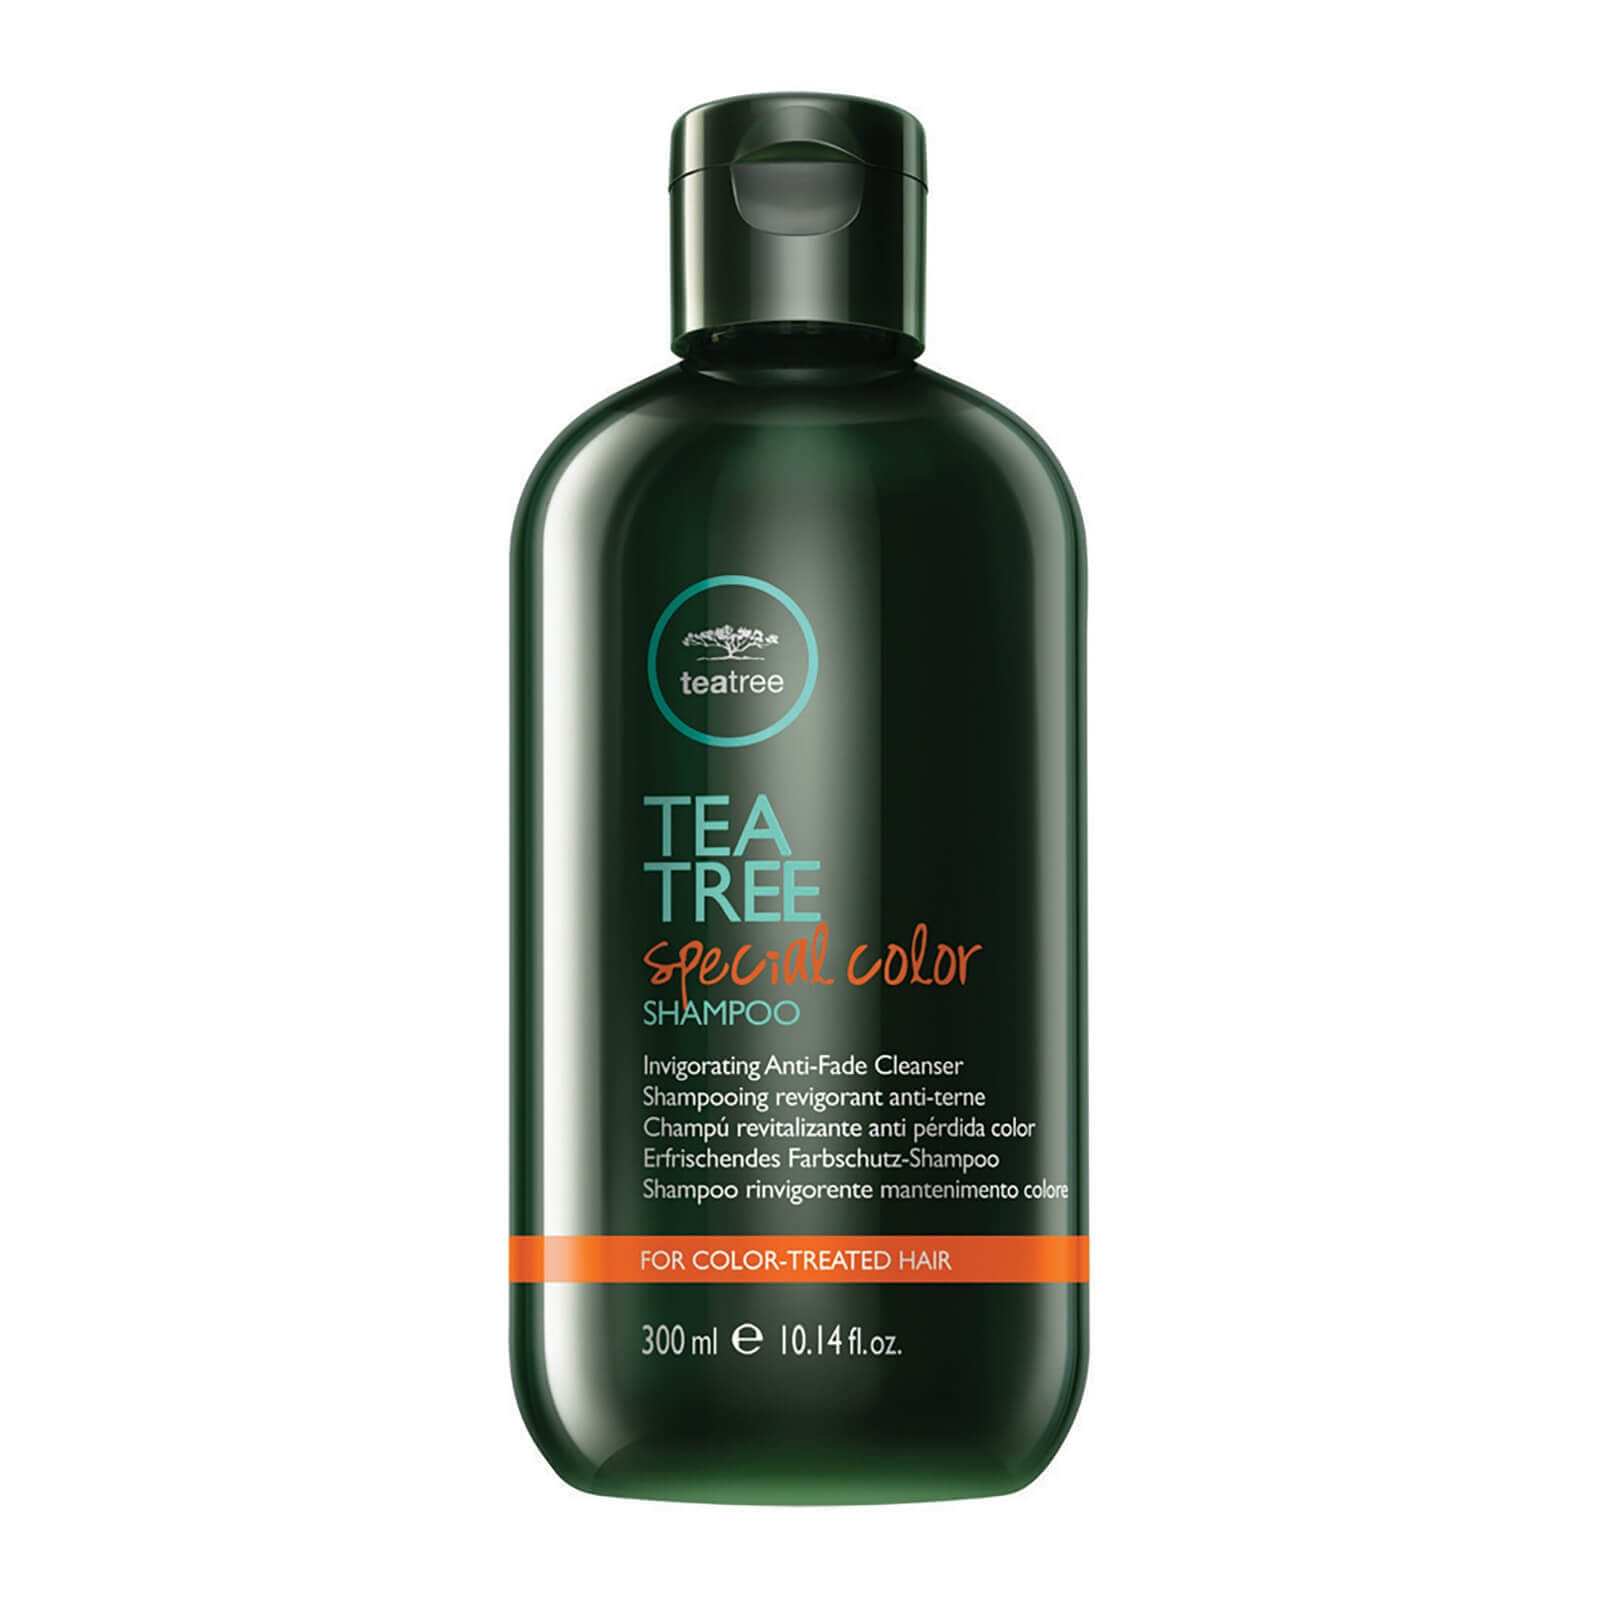 Paul Mitchell Tea Tree Special Color Shampoo.